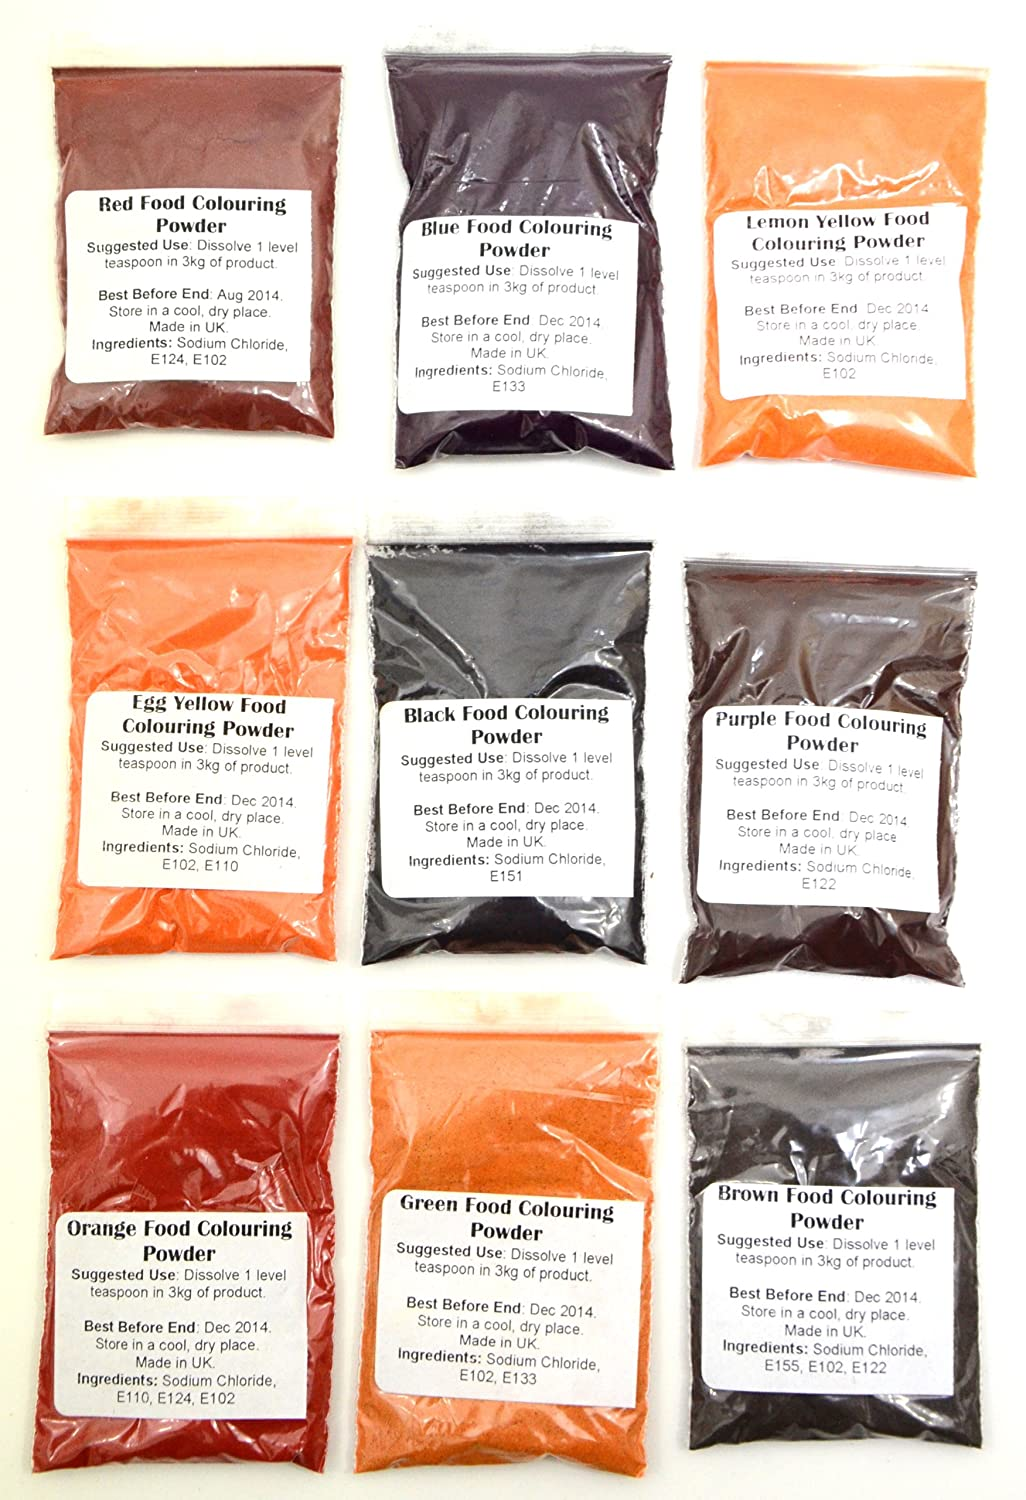 5 pack of food colouring powder: Amazon.co.uk: Grocery